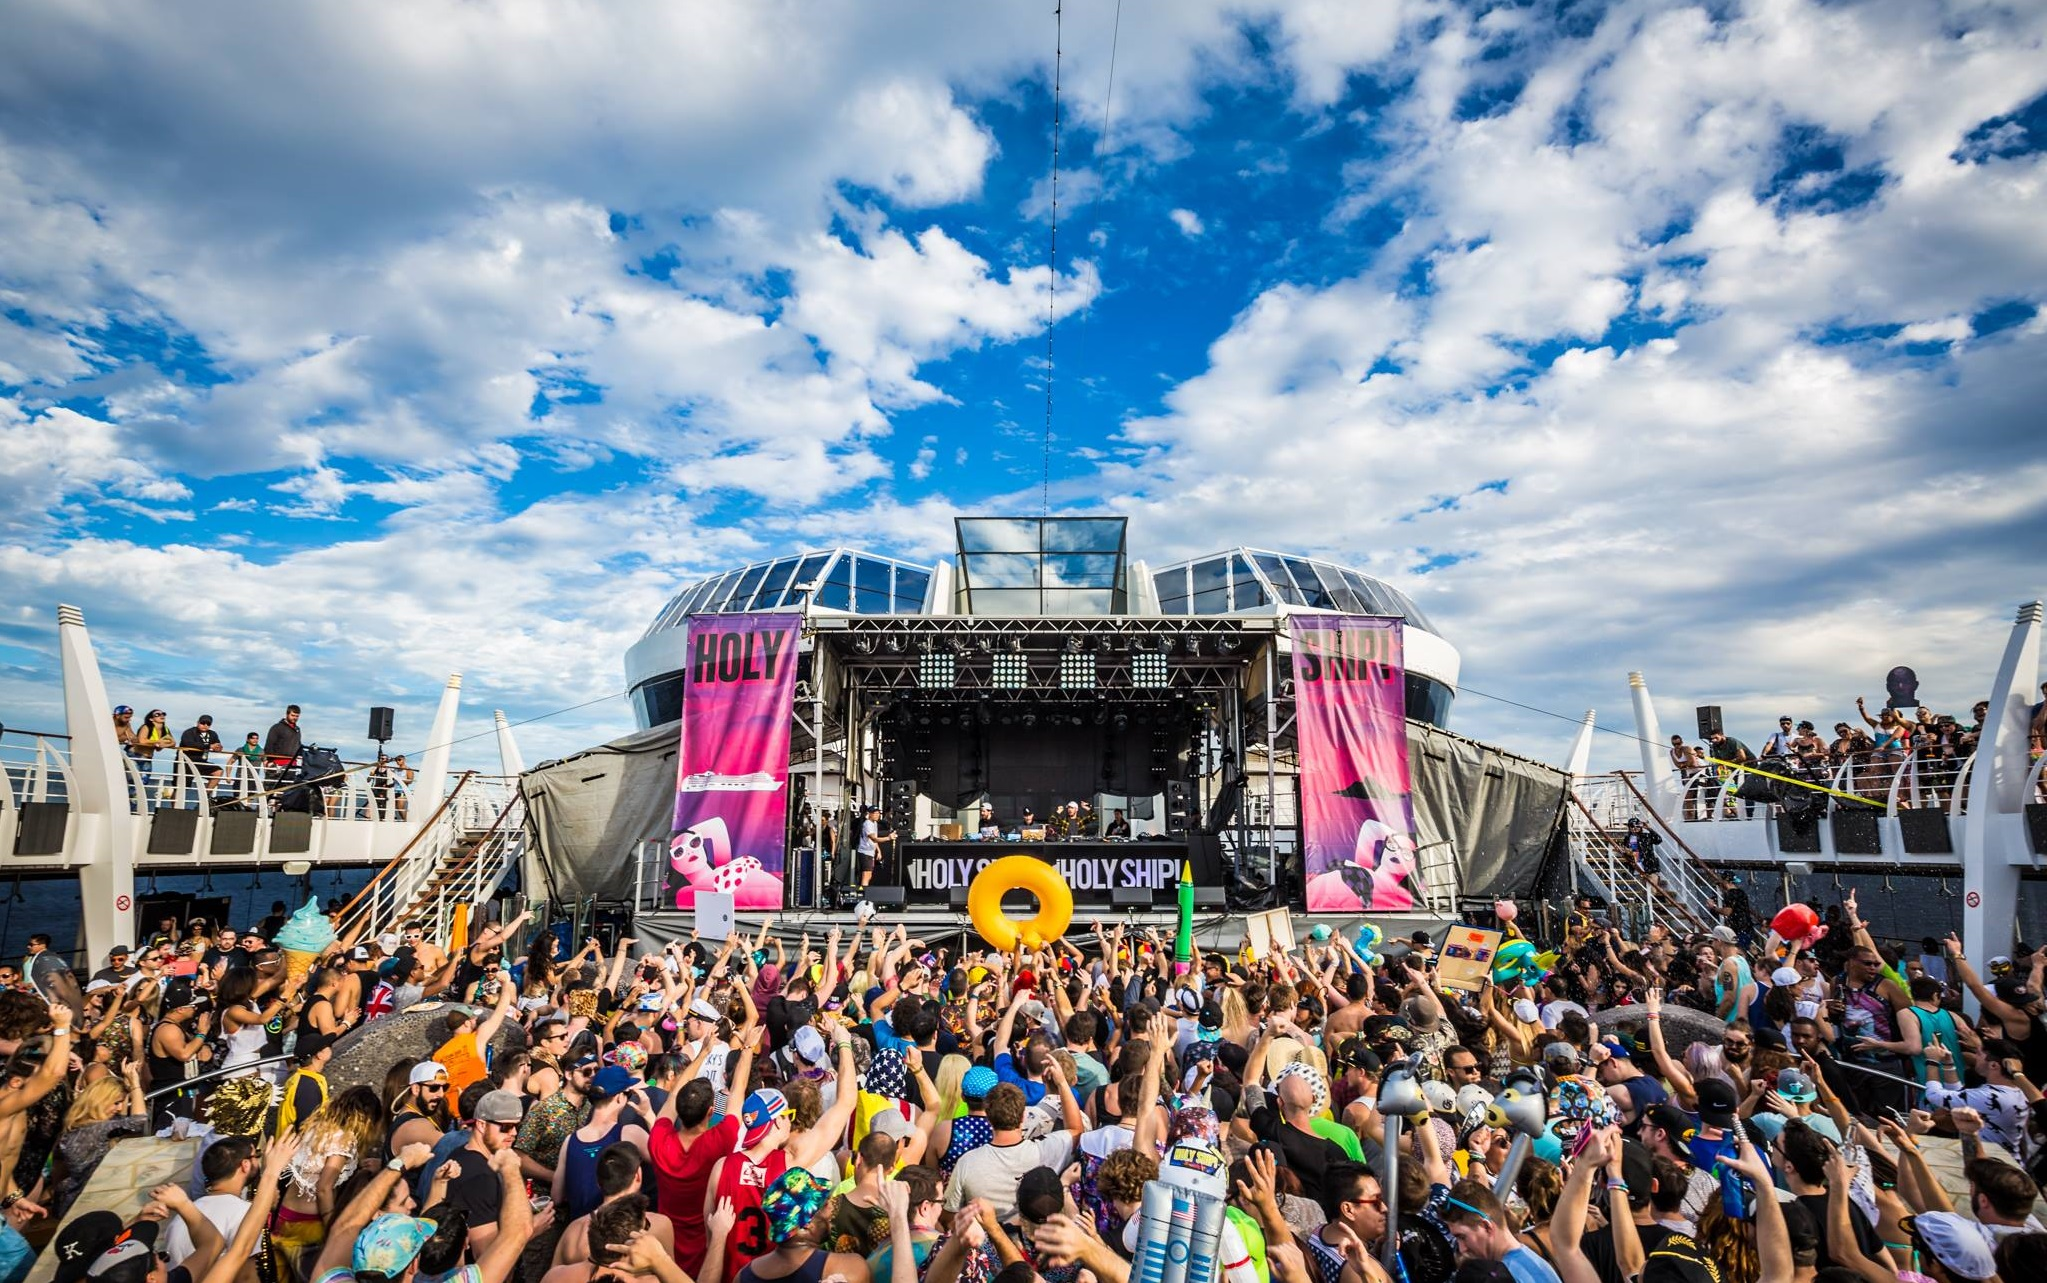 Holy Ship Announces Back To Back Dates For 2018